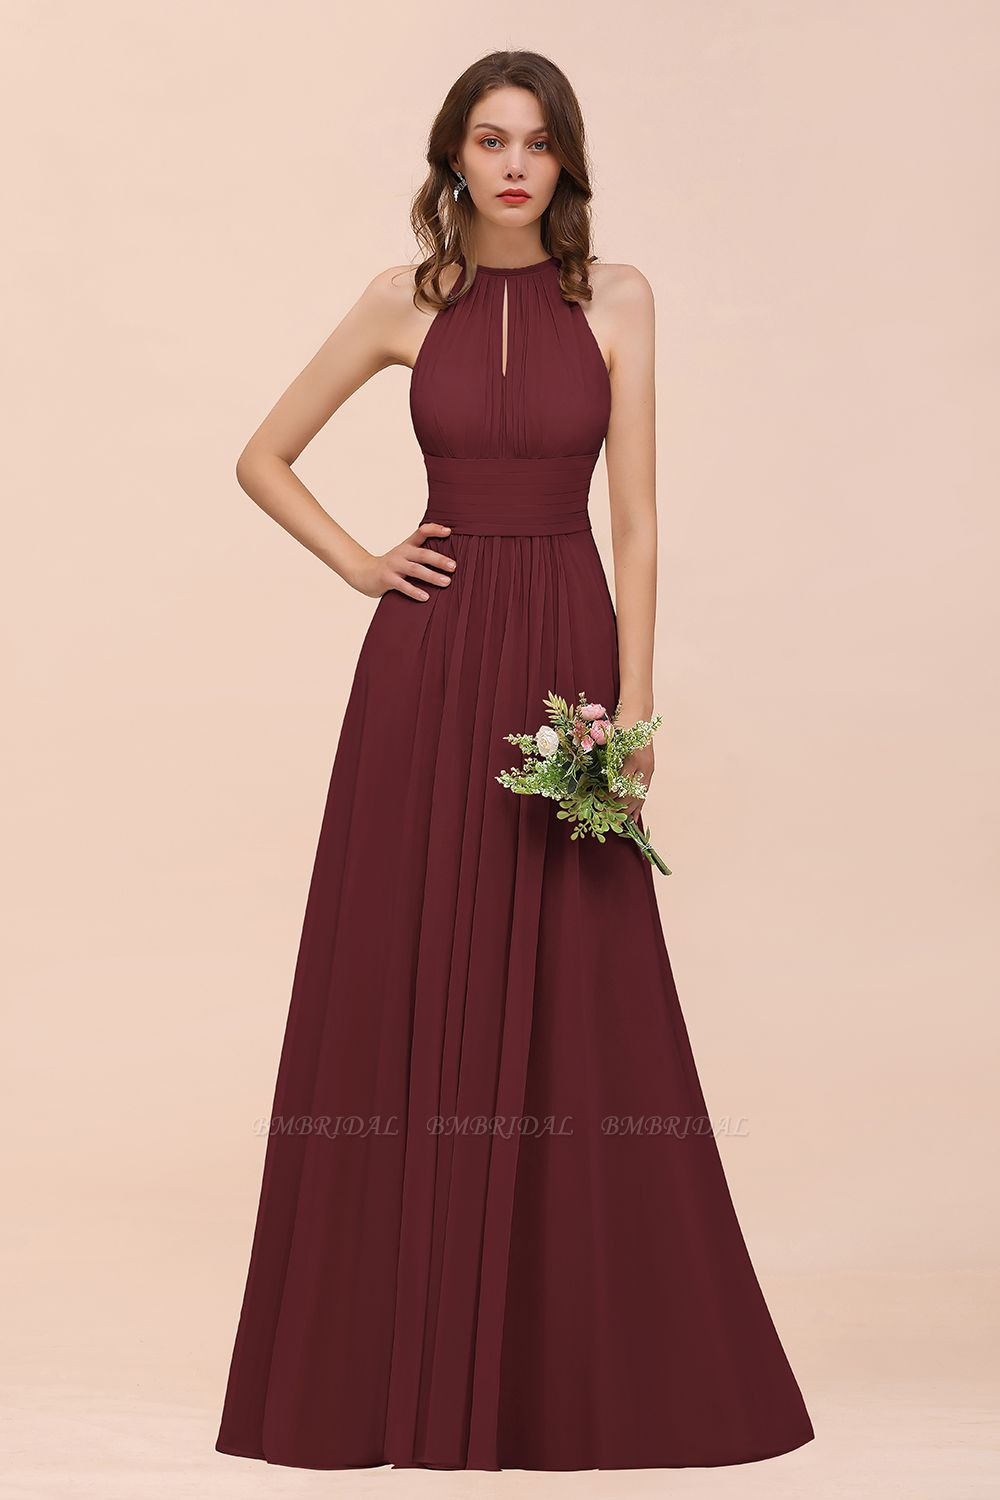 BMbridal Elegant Chiffon Jewel Ruffle Champagne Affordable Bridesmaid Dress Online